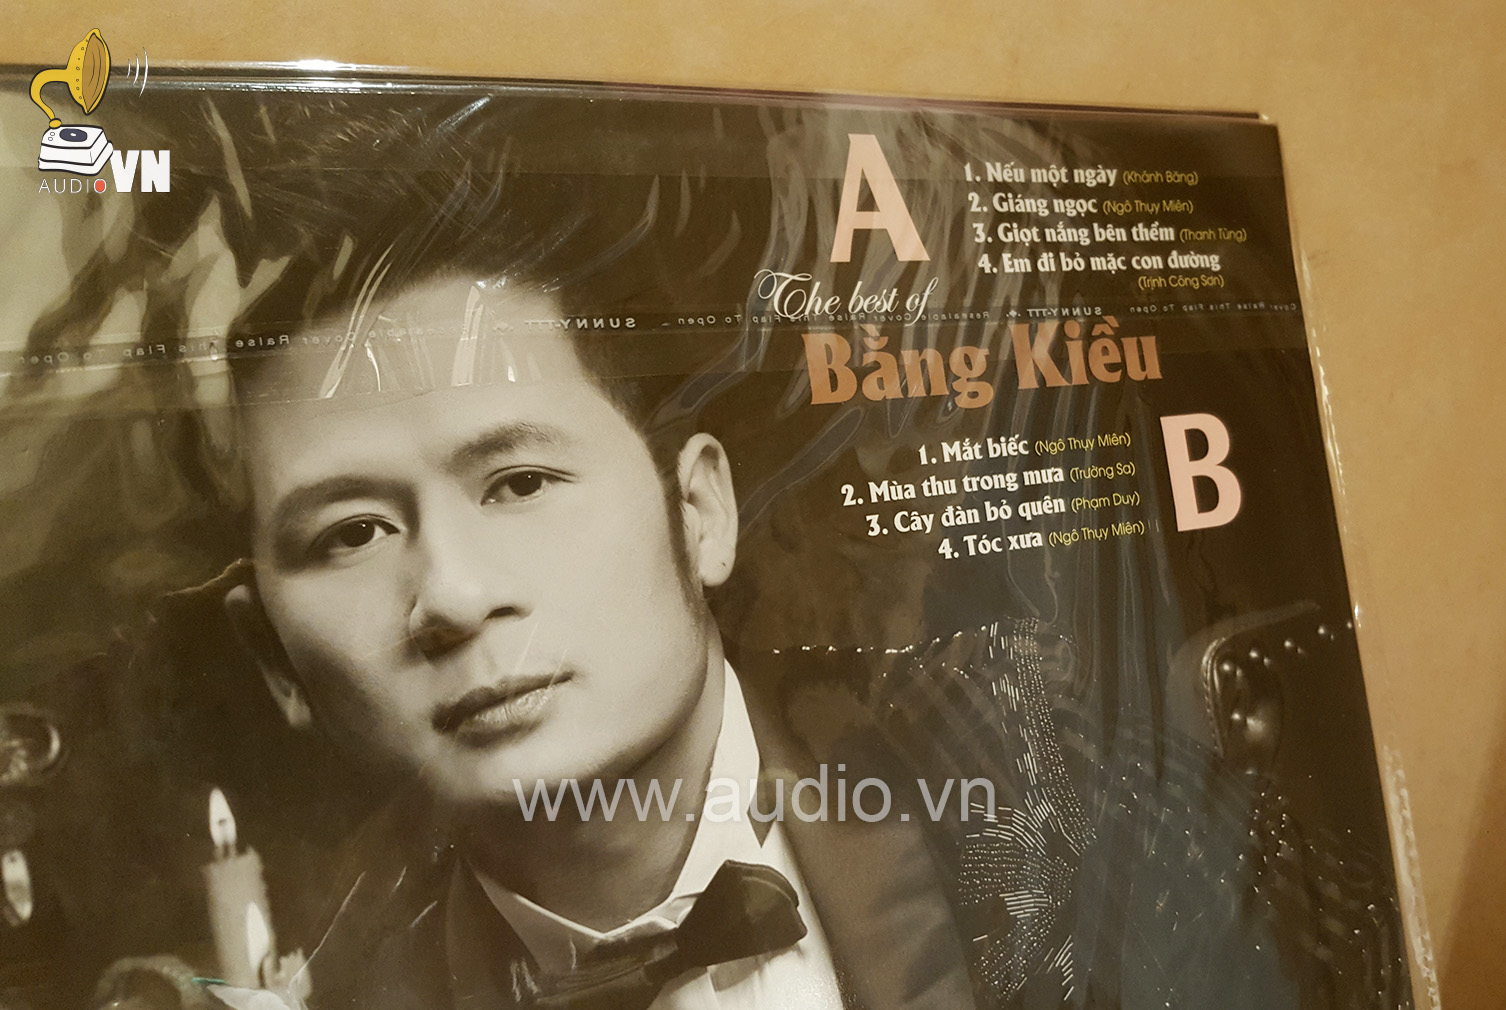 đia-LP-The-best-of-Bang-Kieu-1 (1)